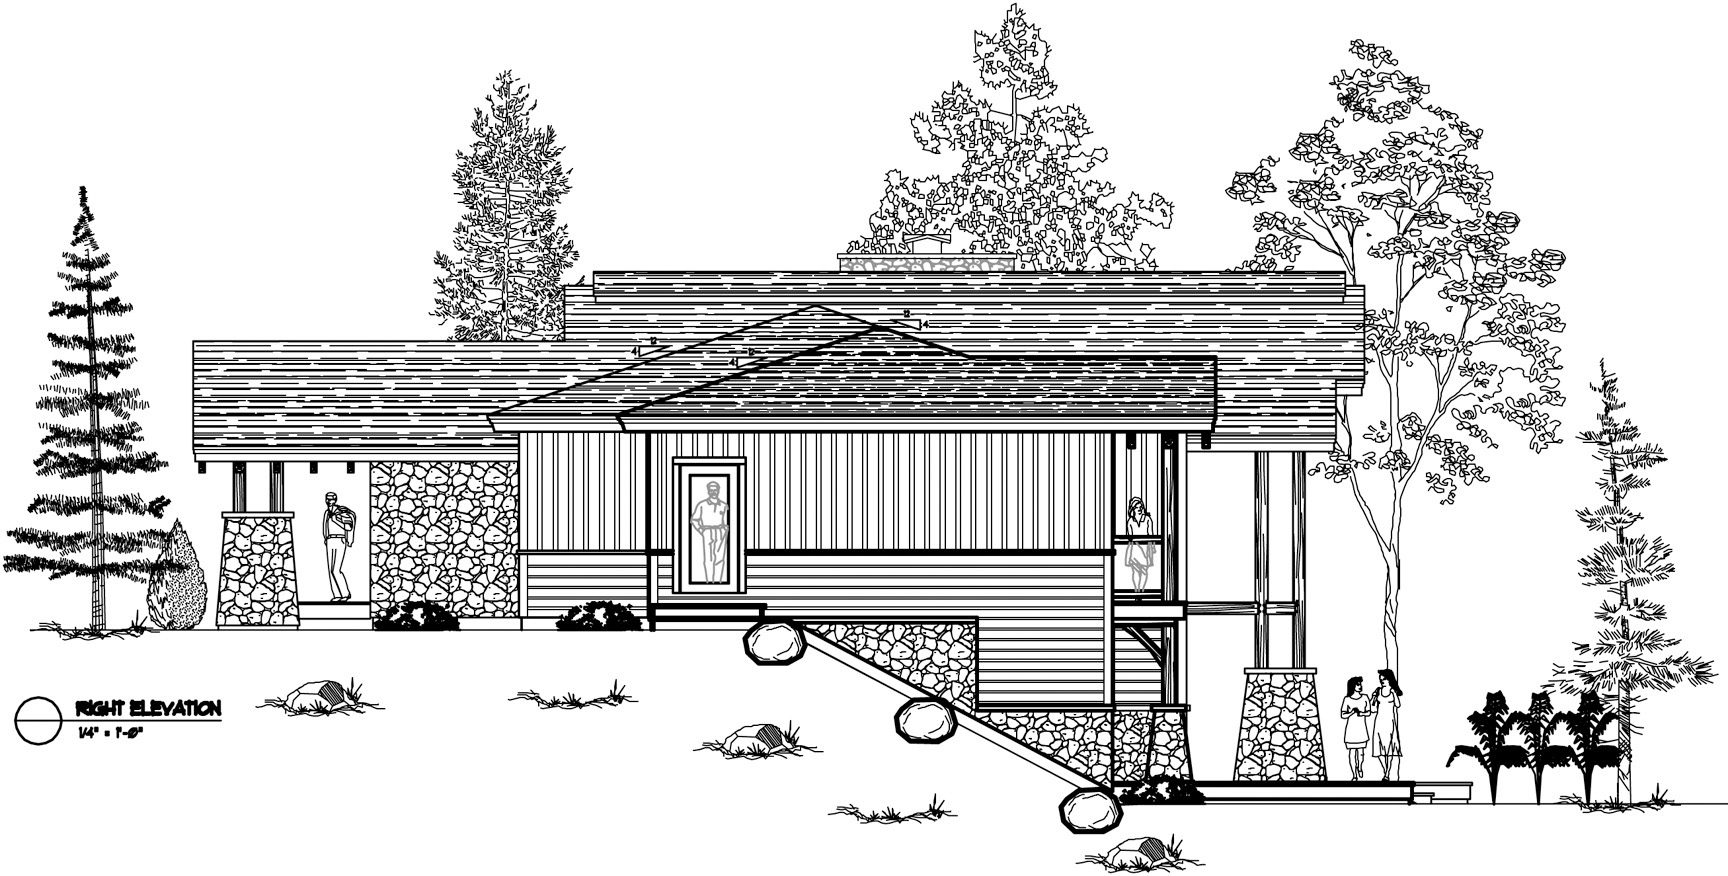 Normerica Timber Frames, House Plan, The Highrock 3579, Right Elevation